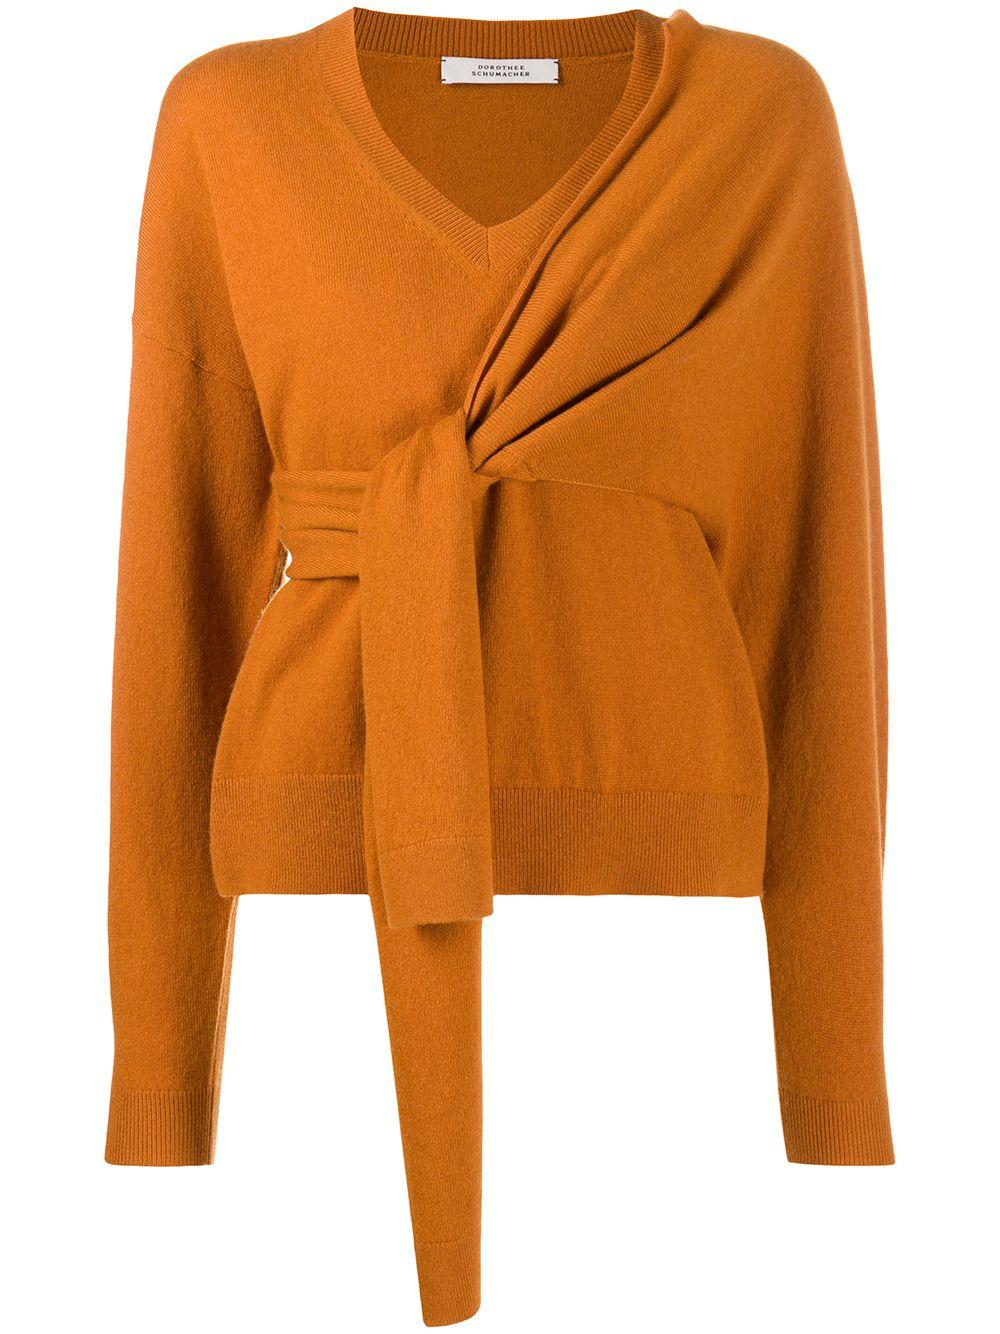 Deconstructed Look Pullover Vneck Sweater Item # 910403